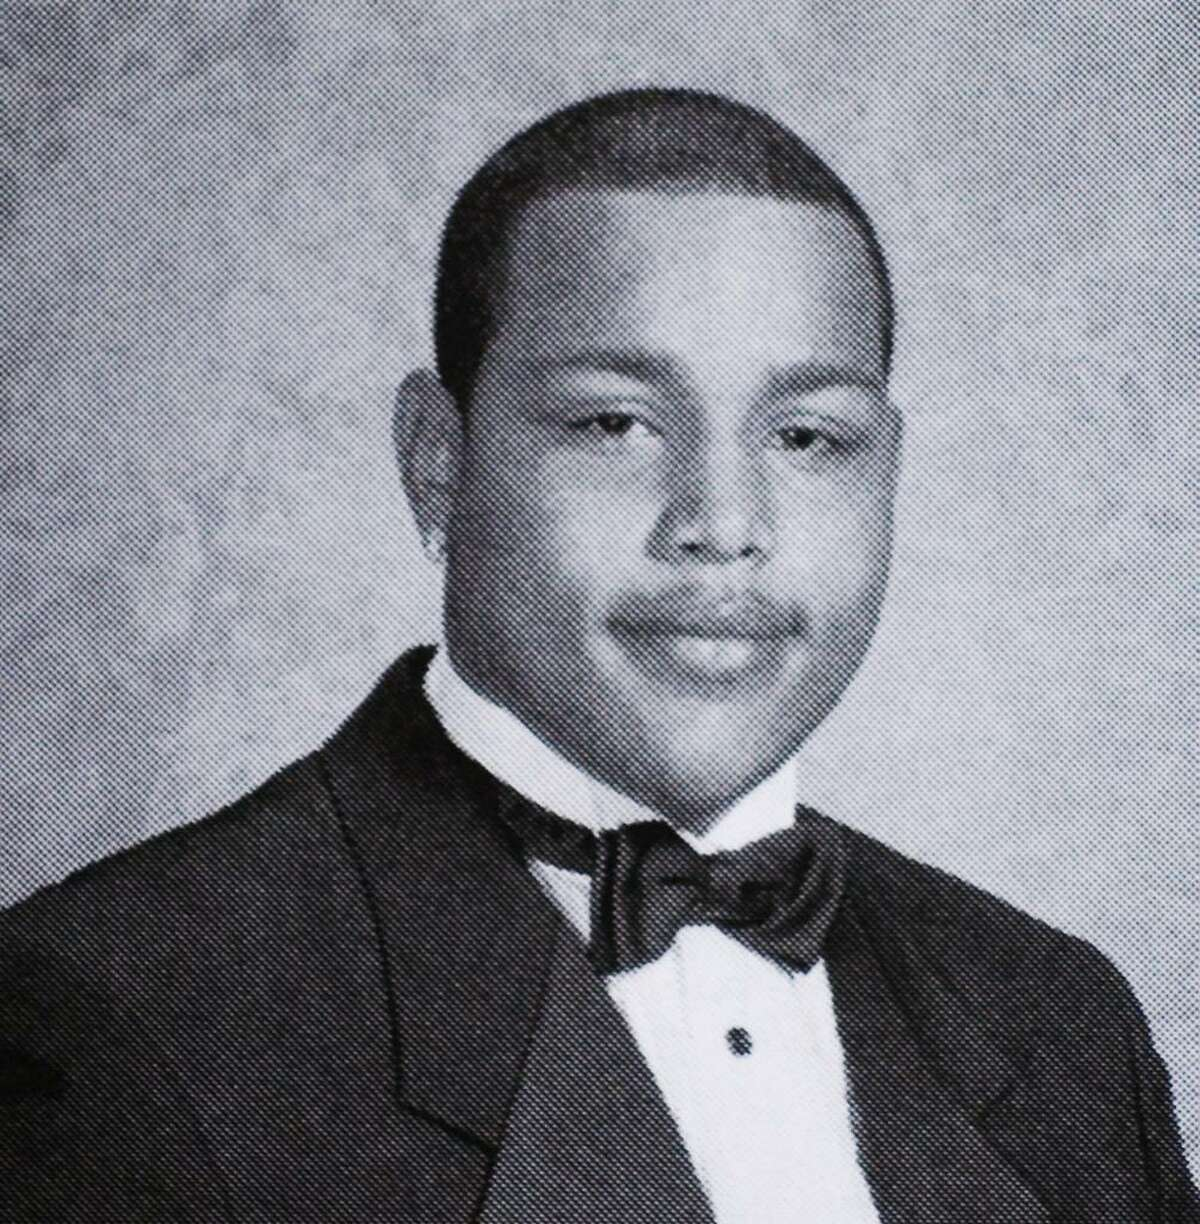 Denny Alcantara, Westhill High School Class of 2006 yearbook photo. Alcantara man was shot and killed in Stamford, Conn. on Wednesday, November 4, 2009.